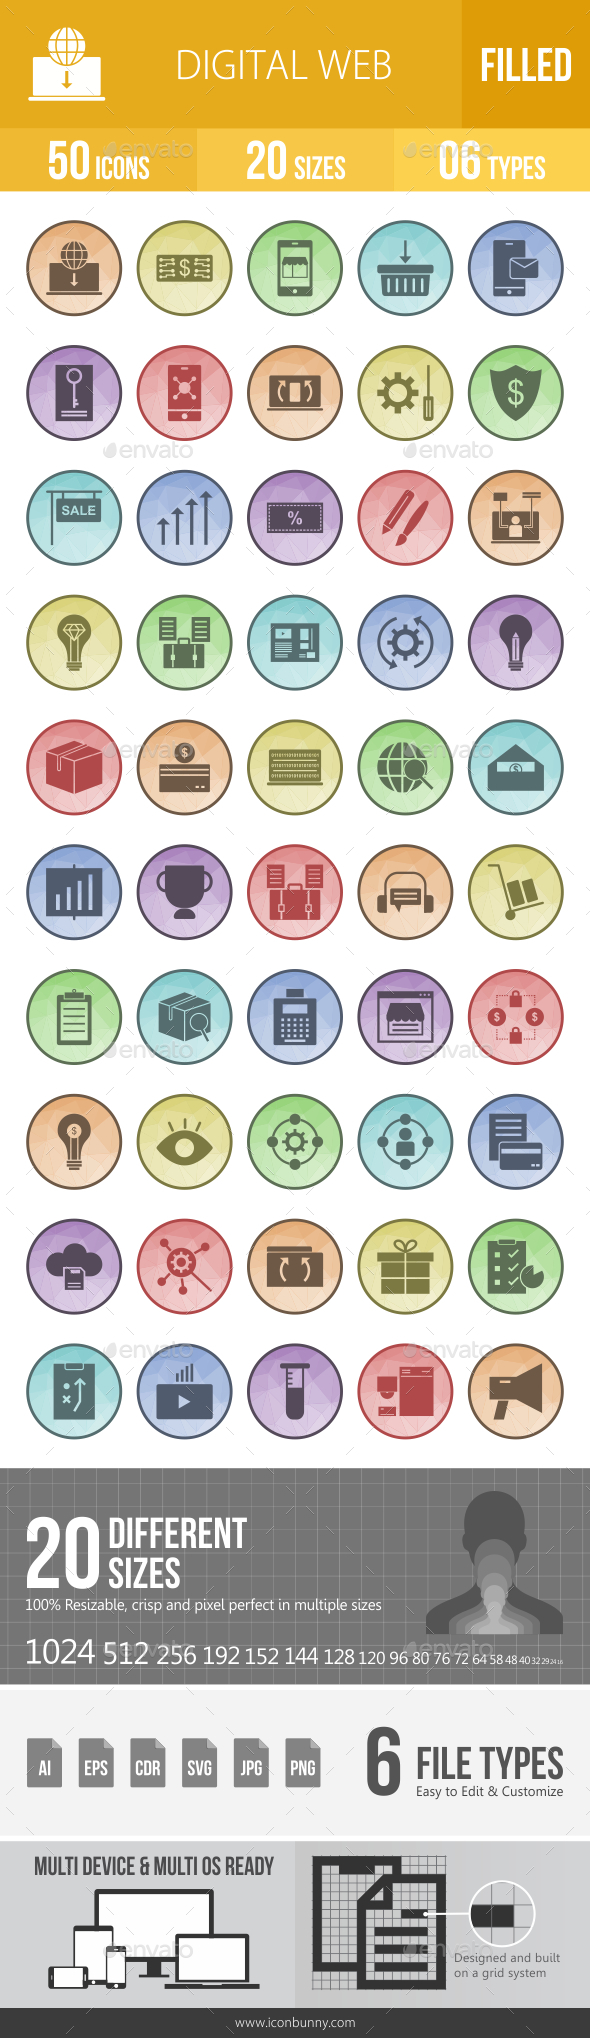 GraphicRiver 50 Digital Web Filled Low Poly Icons 21157252